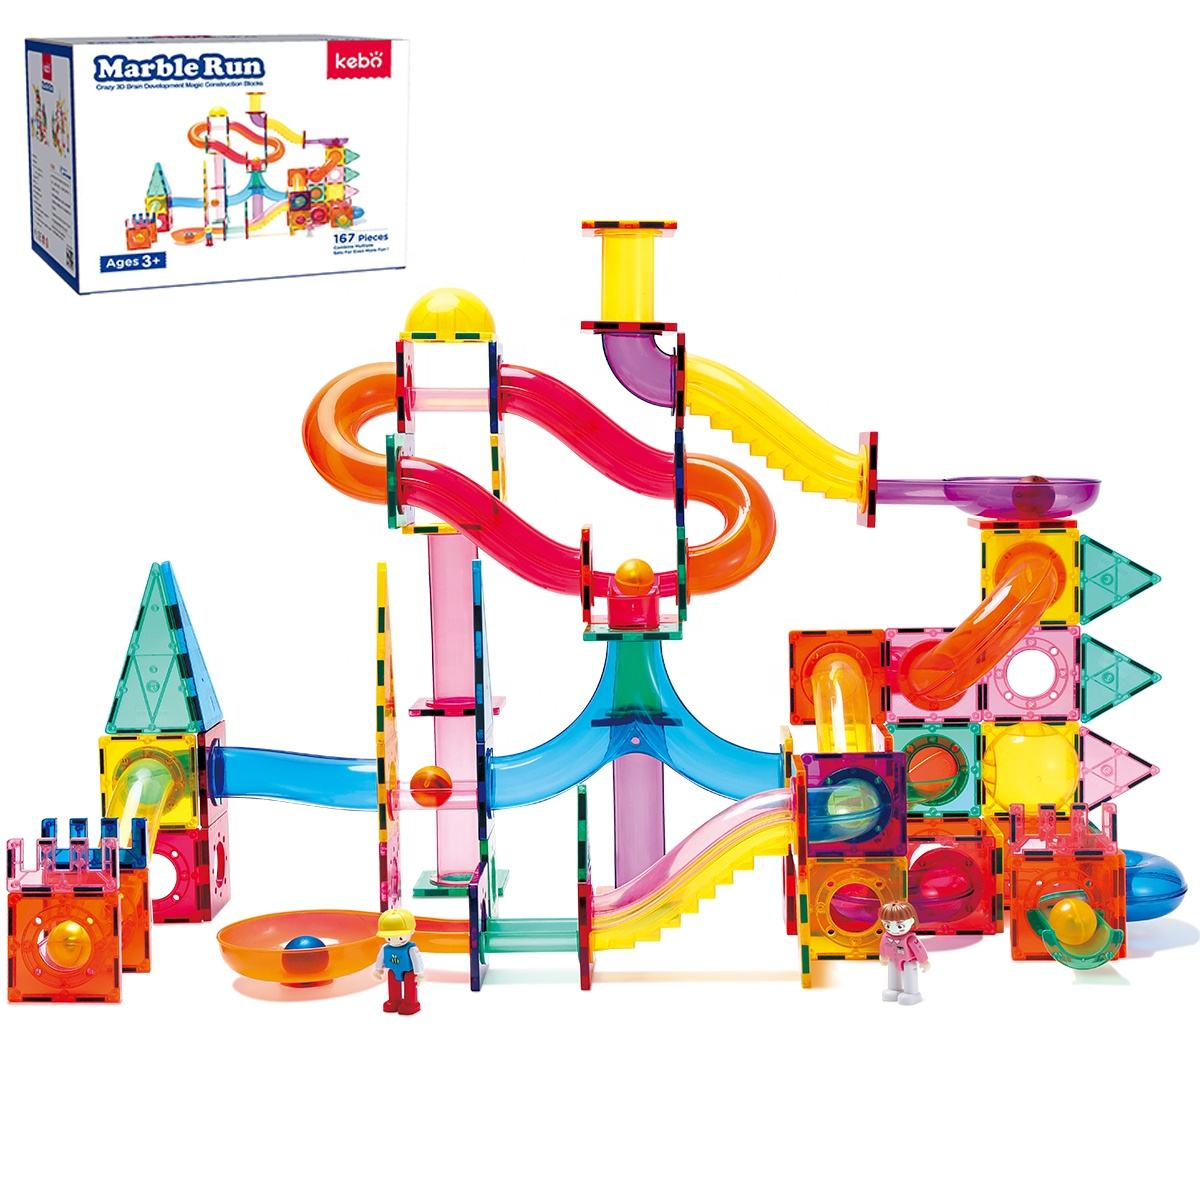 Construction kids educational magnetic tiles marble run toy building blocks children gift set